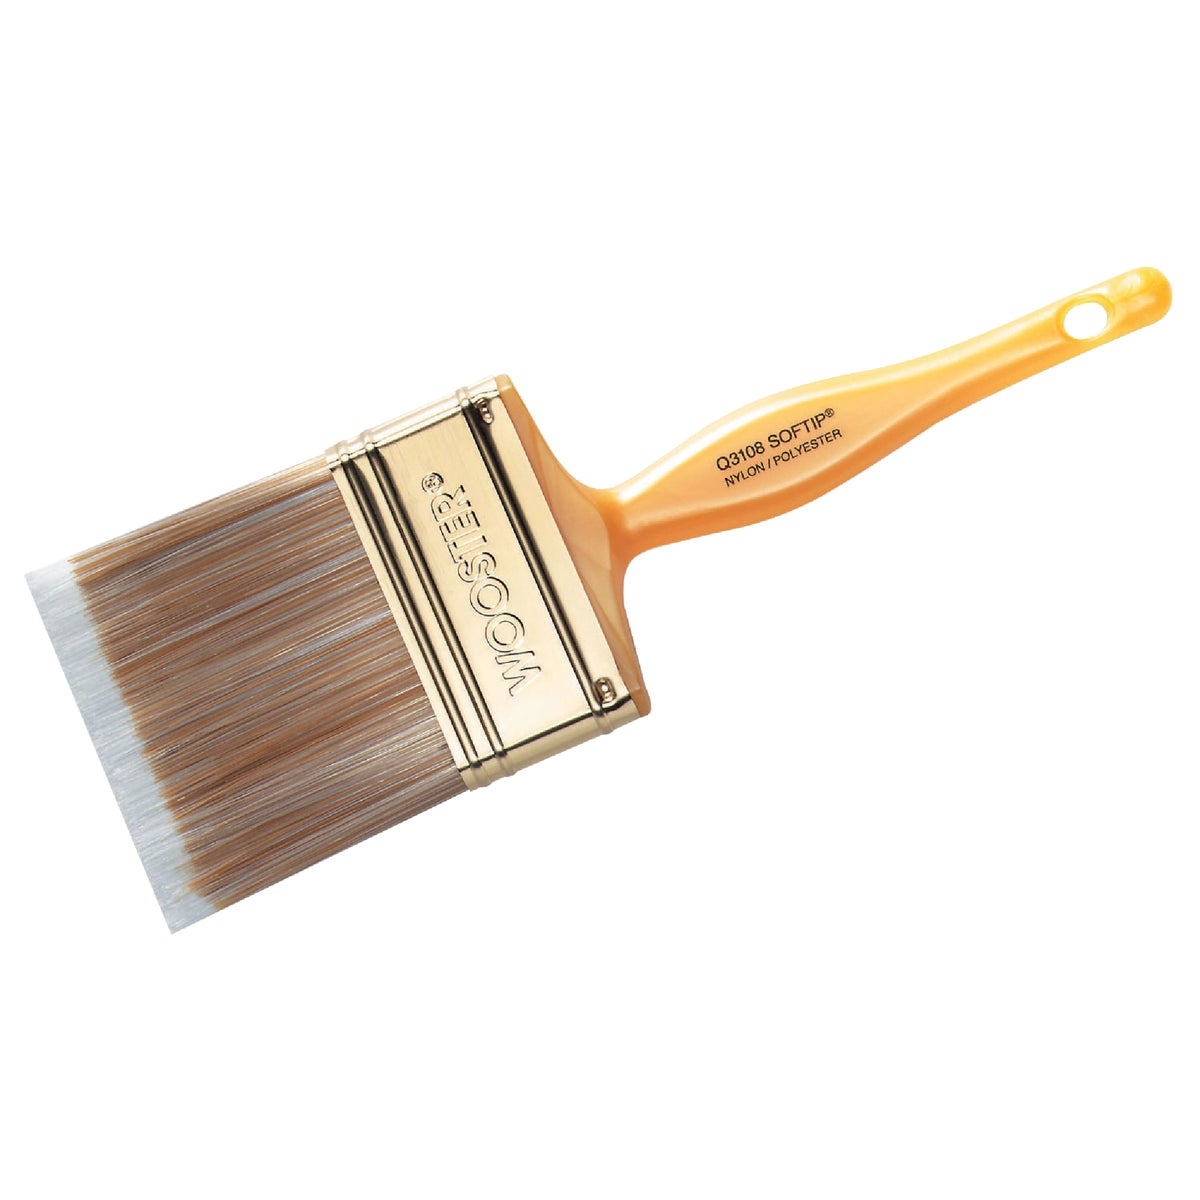 "2.5"" SOFTIP BRUSH - Q3108-2-1/2"" by Wooster Brush Co"